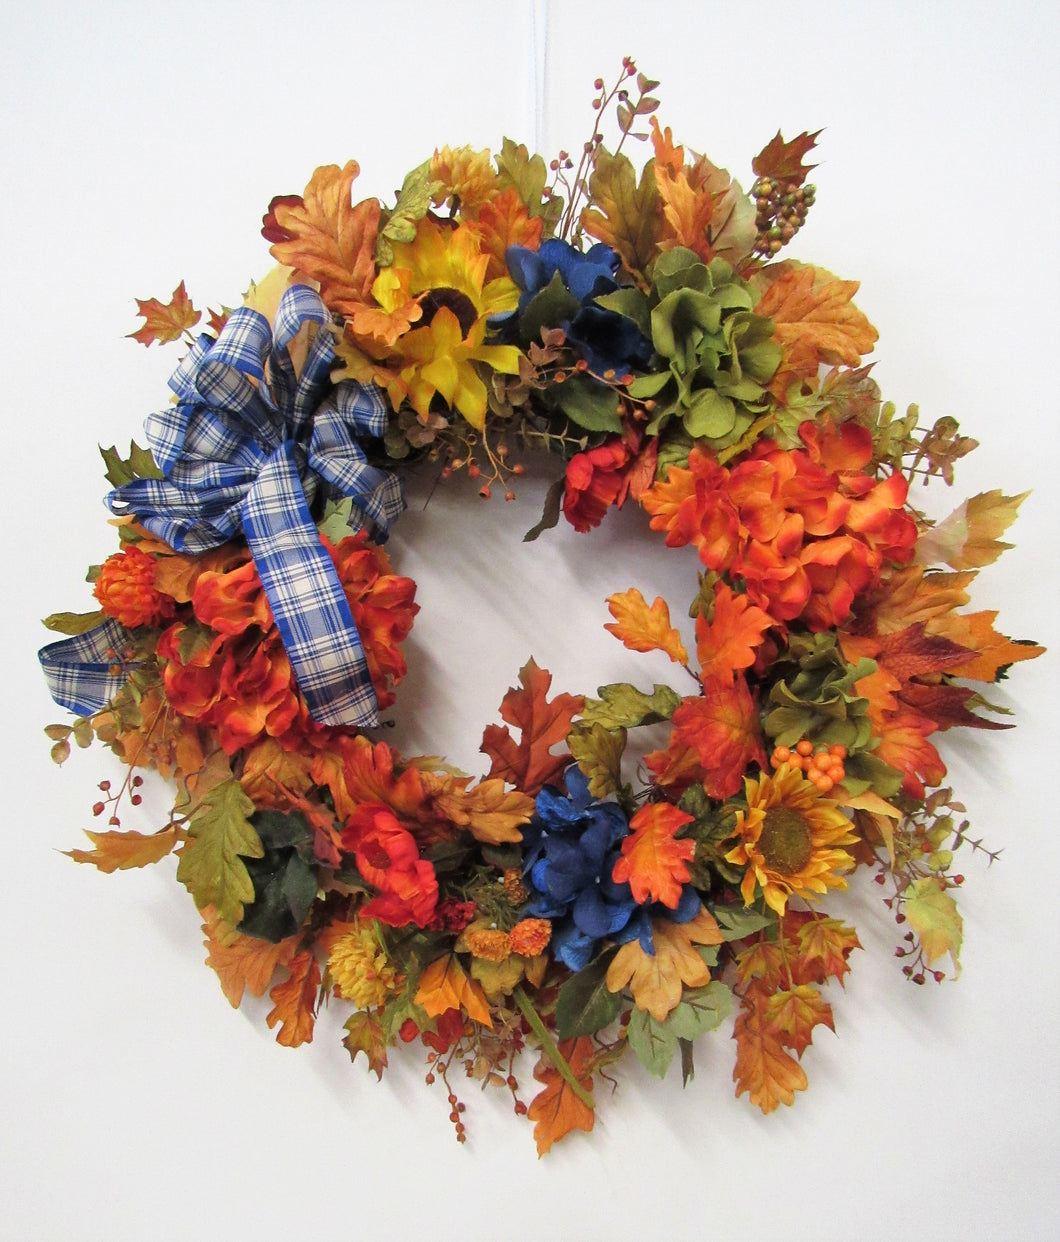 Flame, Olive, Royal Blue Fall Hydrangea Wreath/Harv82 - April's Garden Wreath